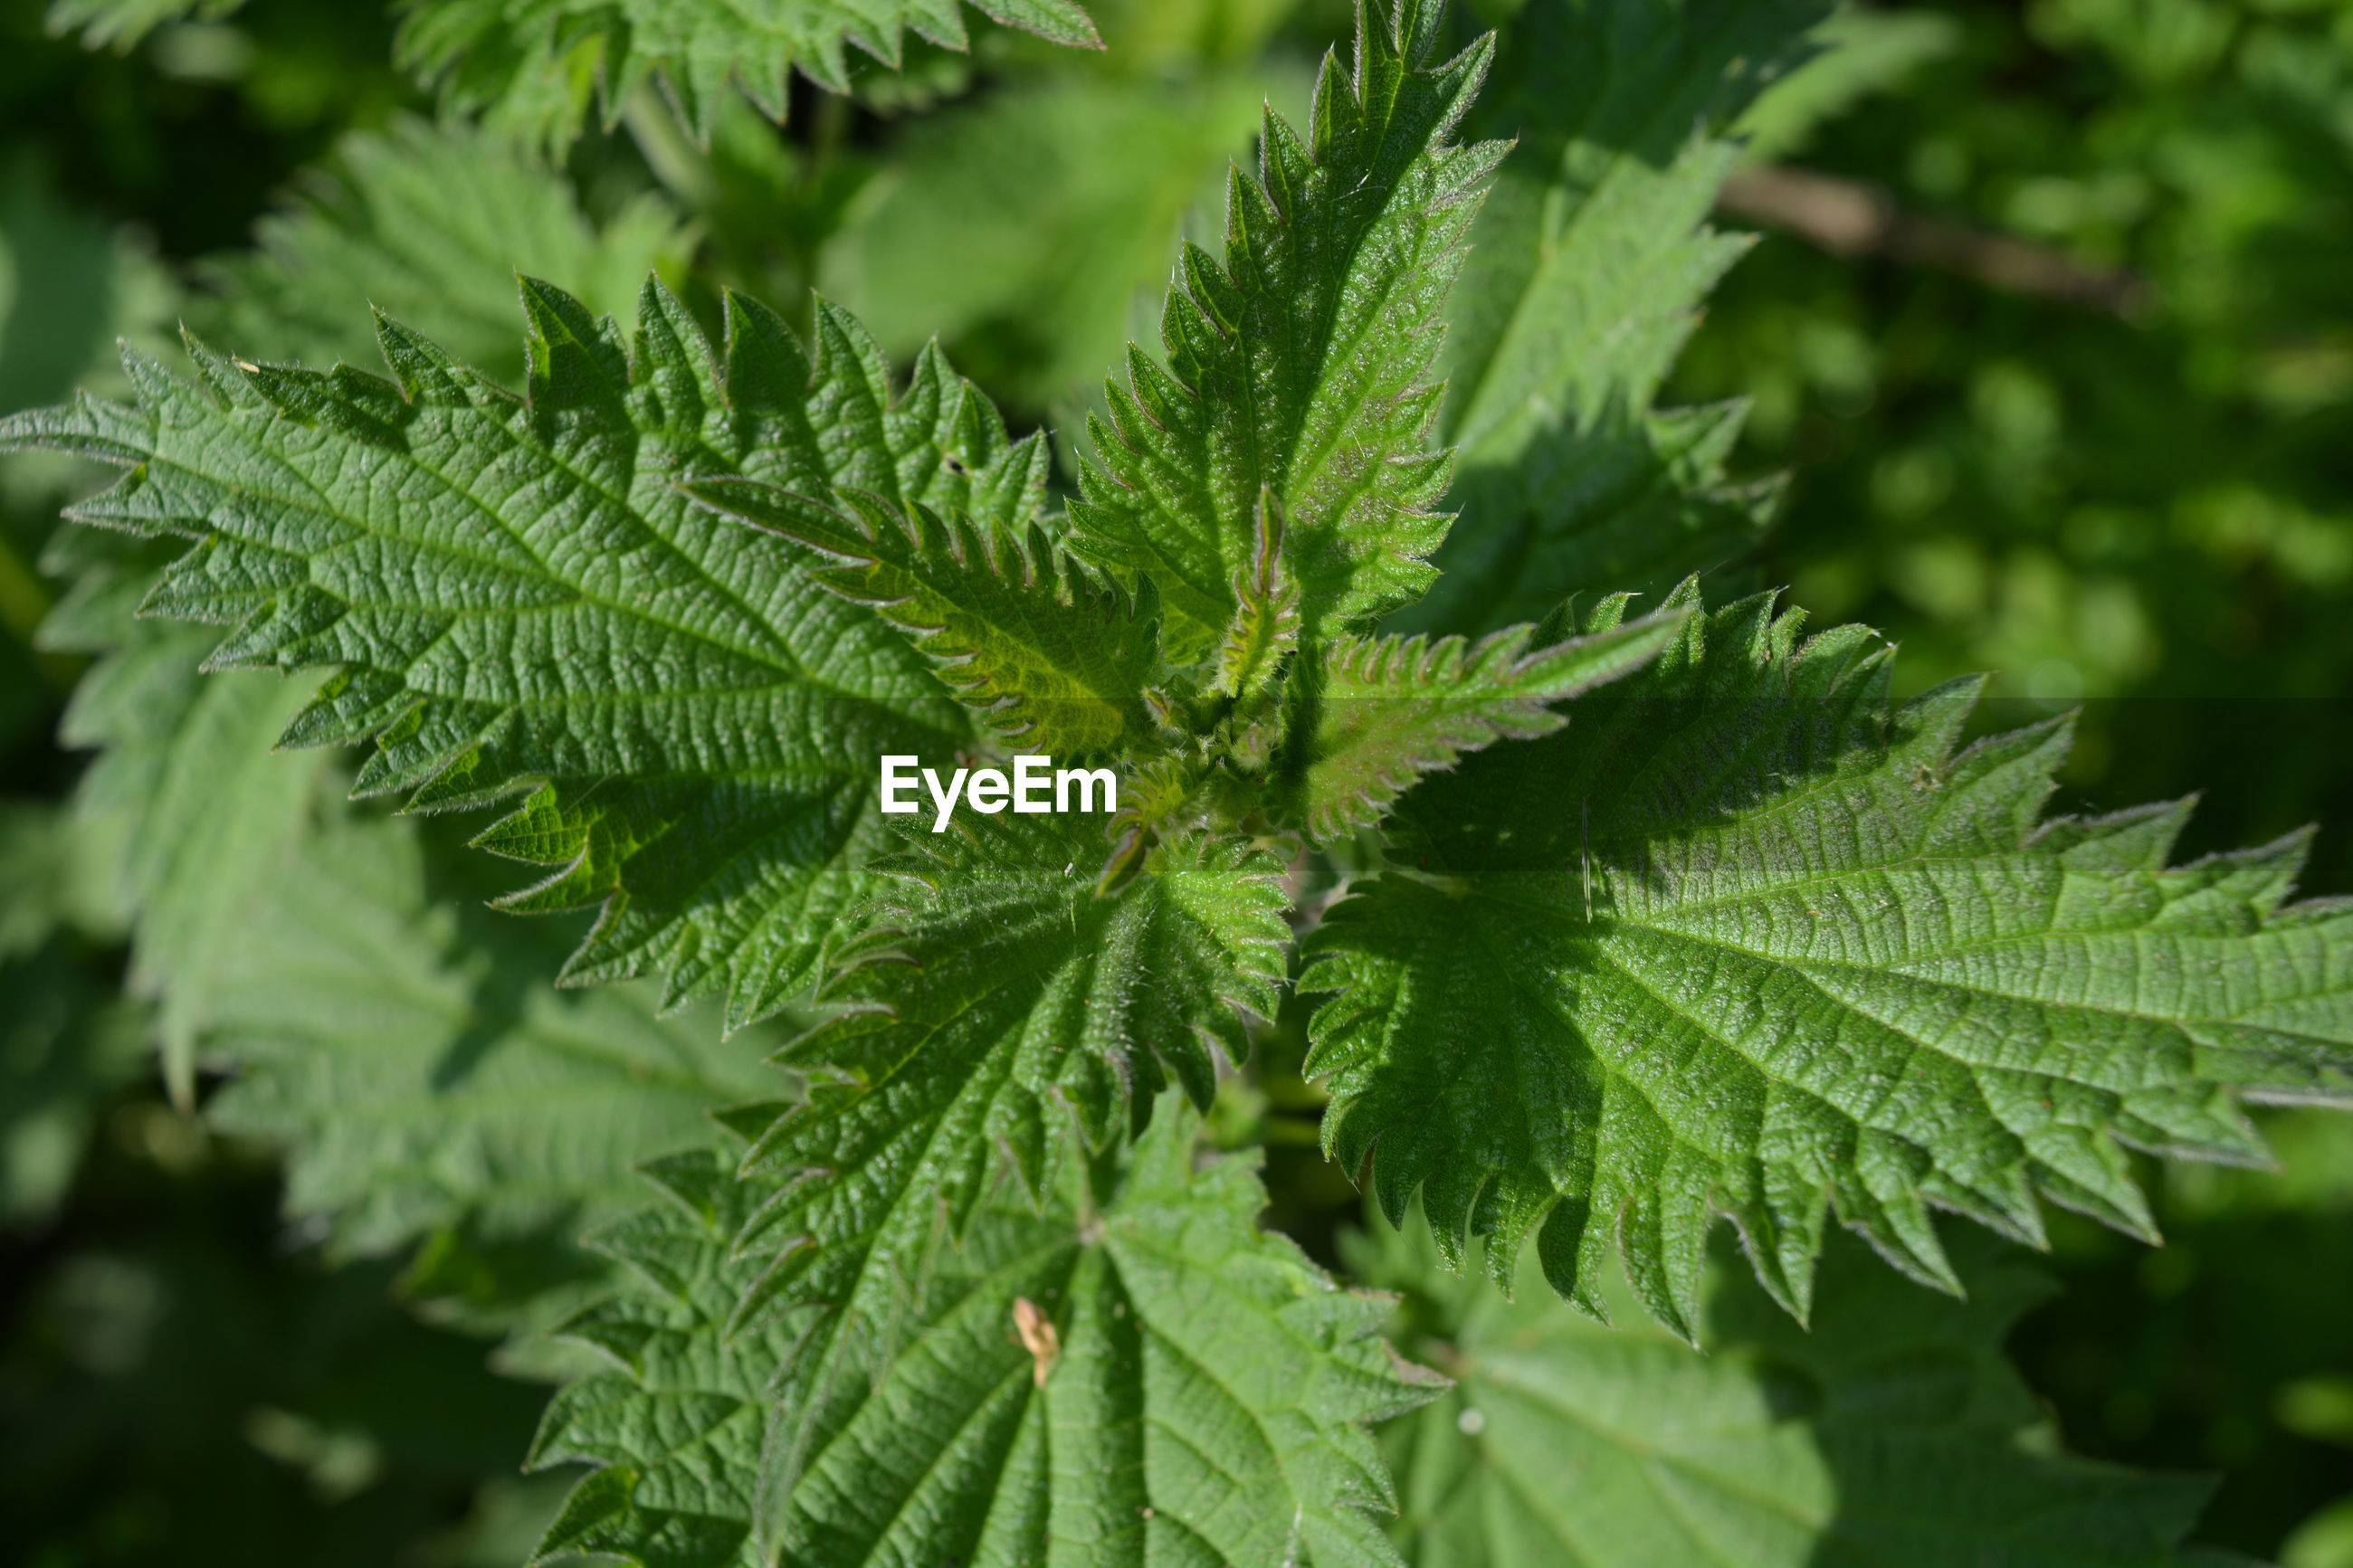 Vibrant green leaves of common nettle, also known as urtica dioica